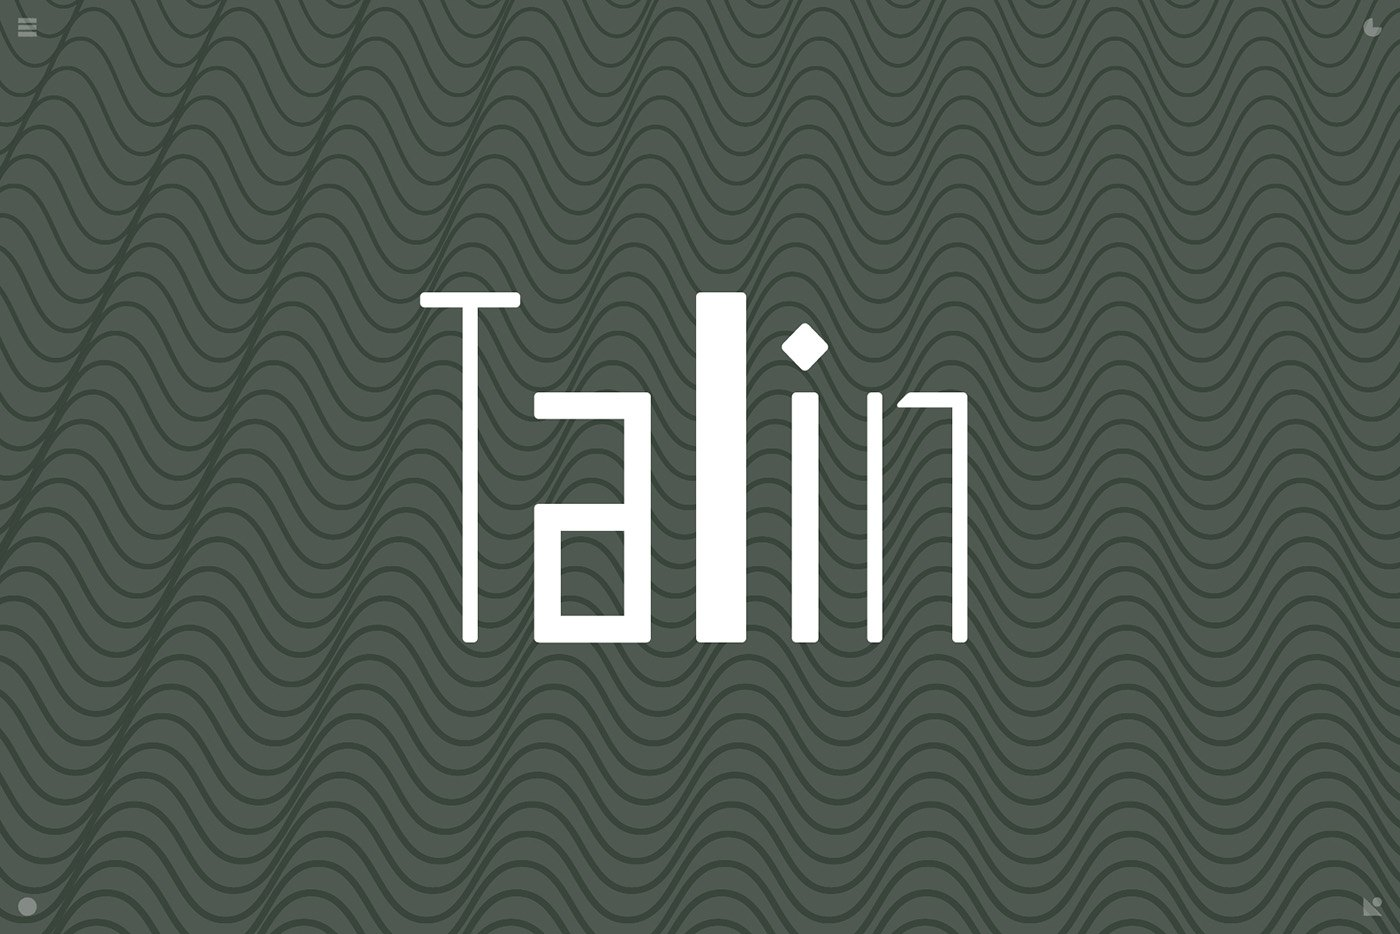 zumEgon_Fonts_Talin_1